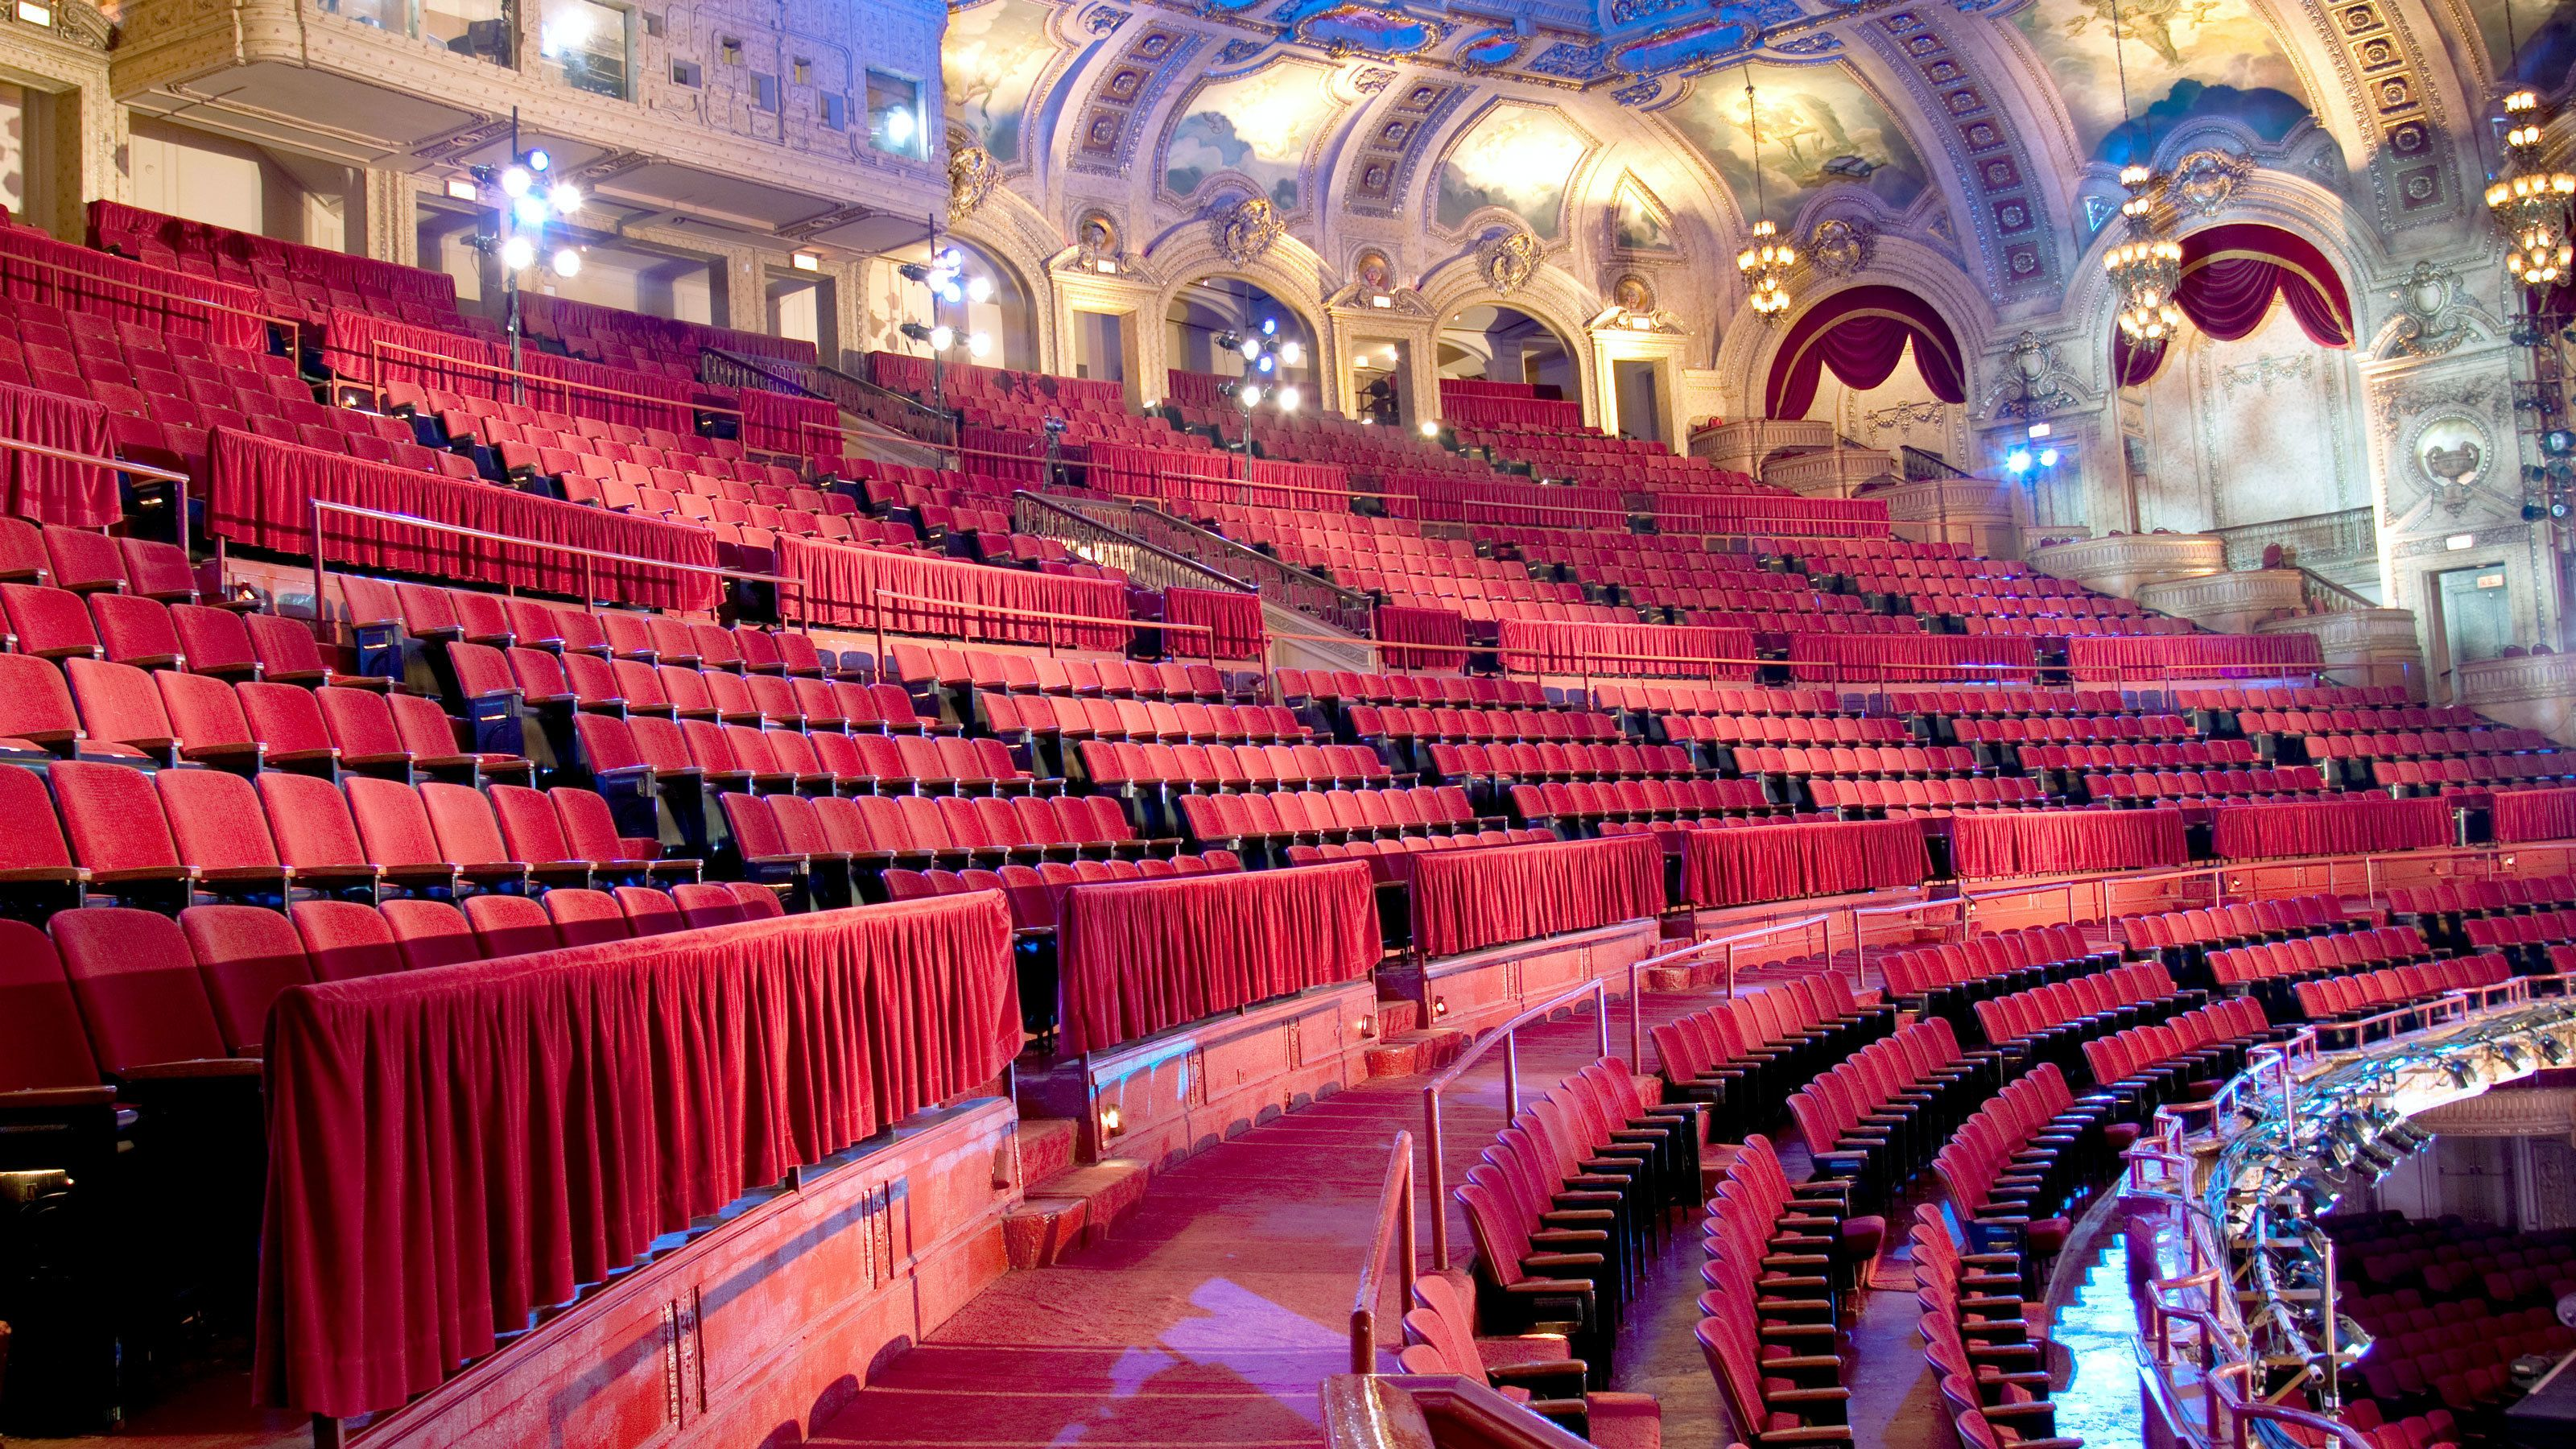 Theatre seating in Chicago